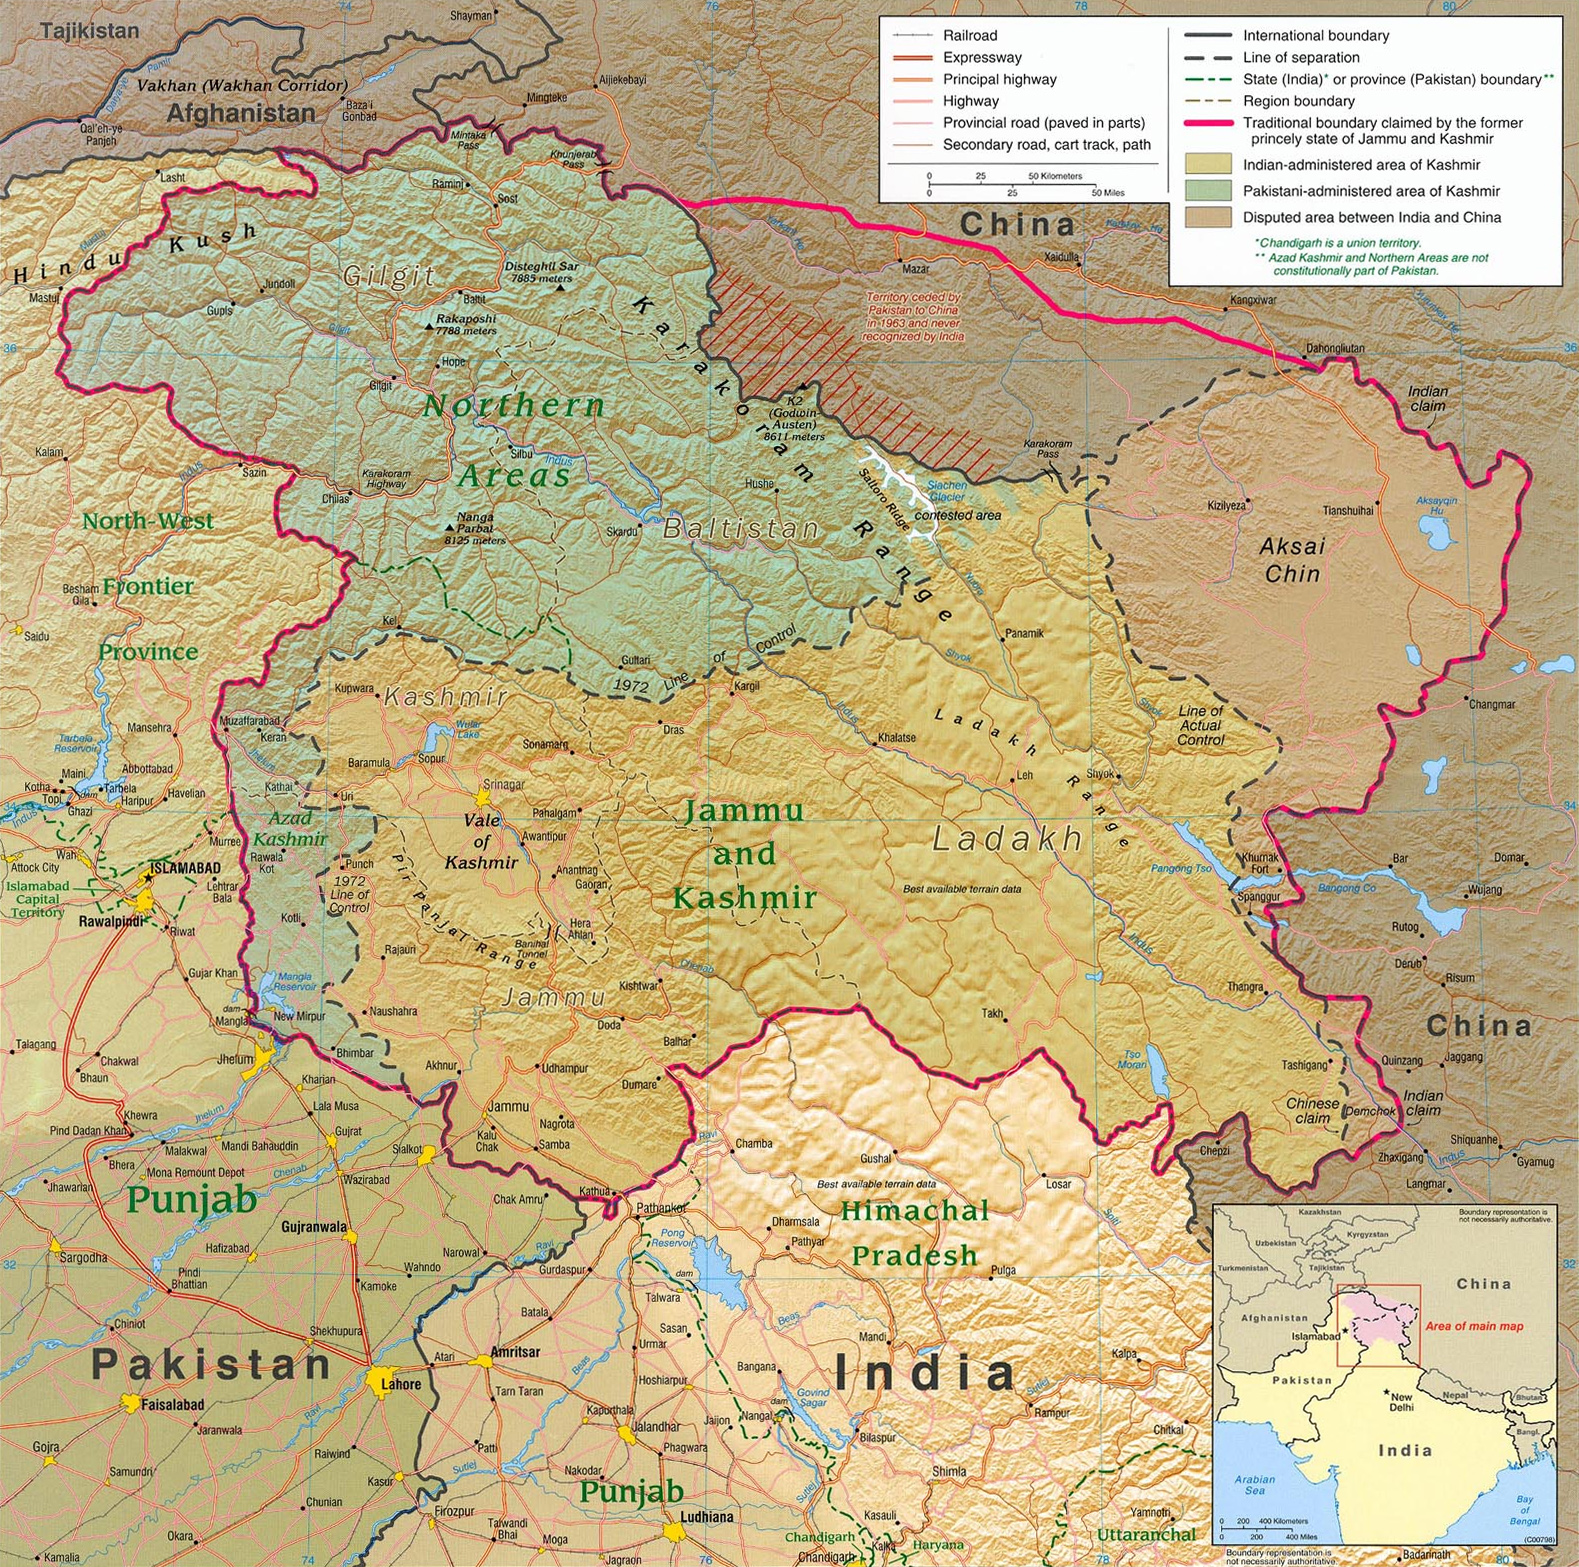 http://upload.wikimedia.org/wikipedia/commons/6/68/Kashmir_region_2004.jpg